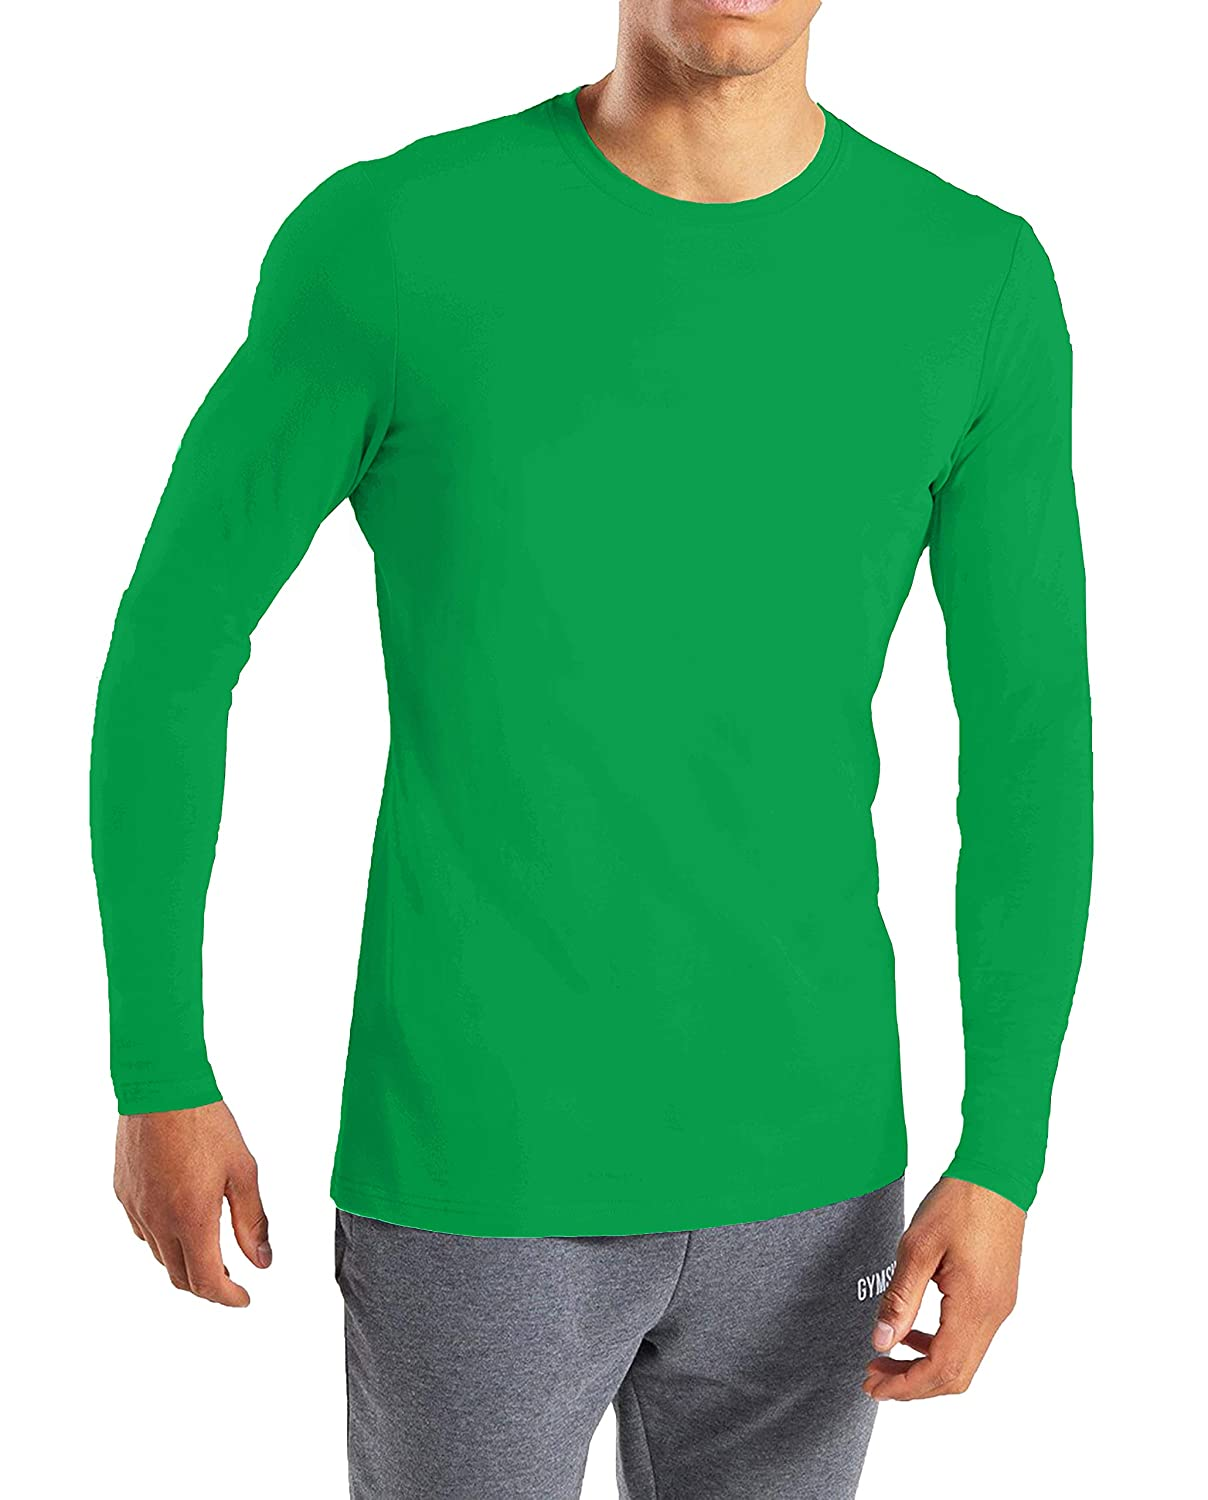 7891ba68ff1a Miracle(Tm) Neon Color Athletic Wicking T Shirt - Adult Mens Womens High  Visibility Shirt at Amazon Men s Clothing store